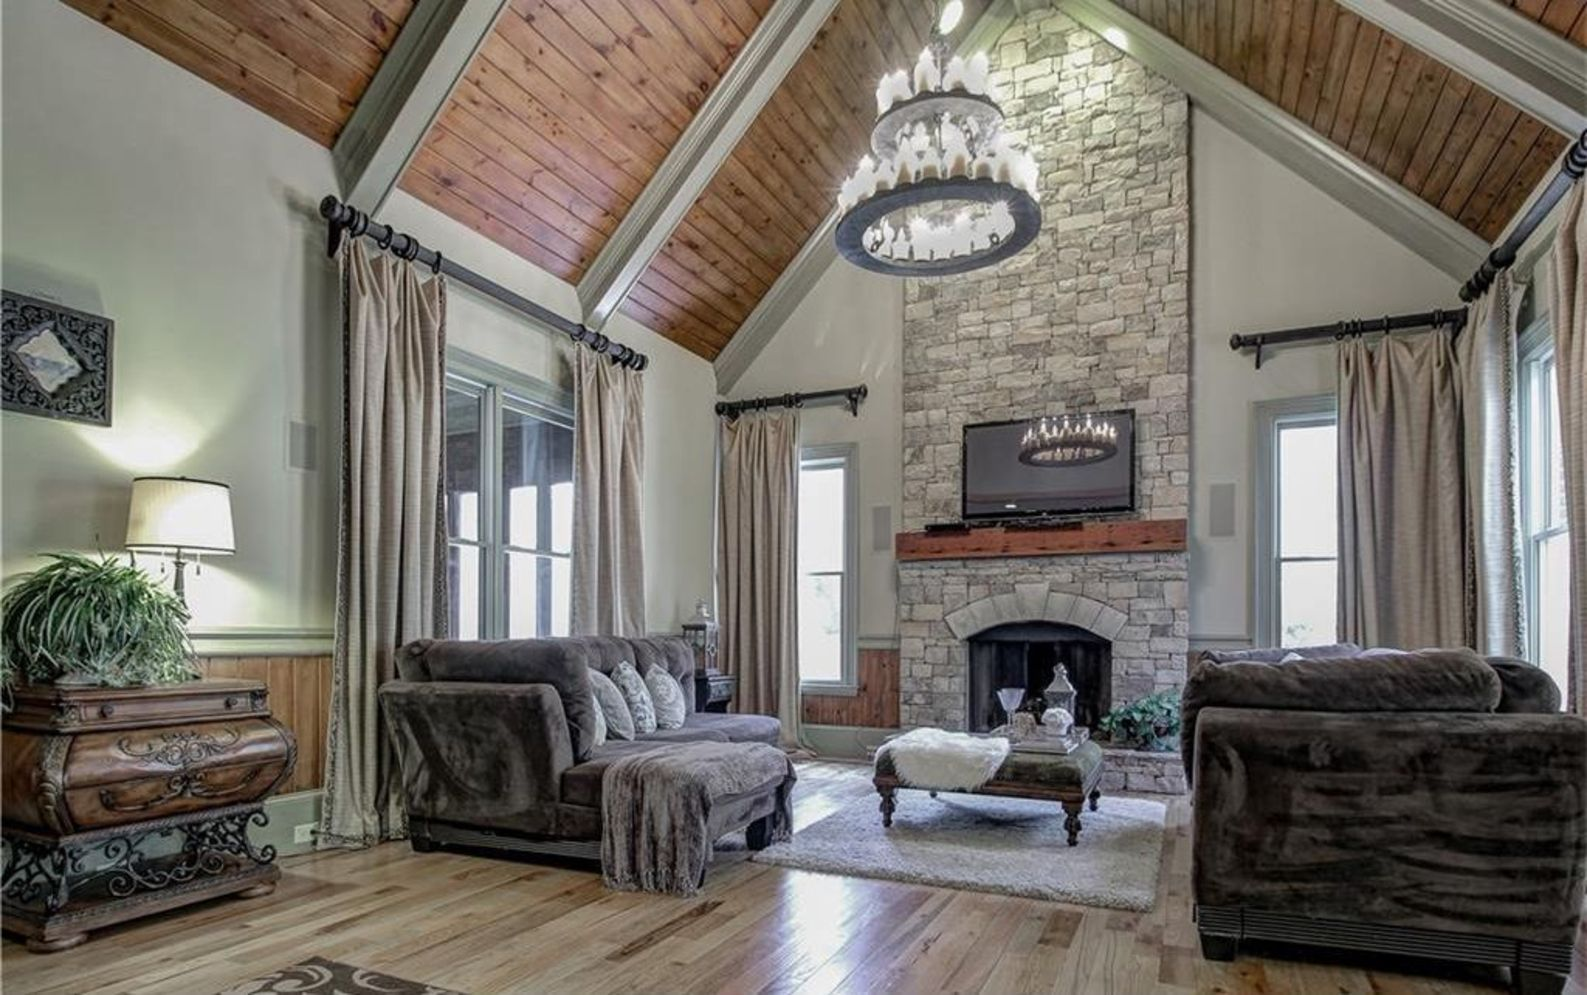 Classic home style with cathedral ceiling which looks gorgeous and grand along with classy interior taste Image 19